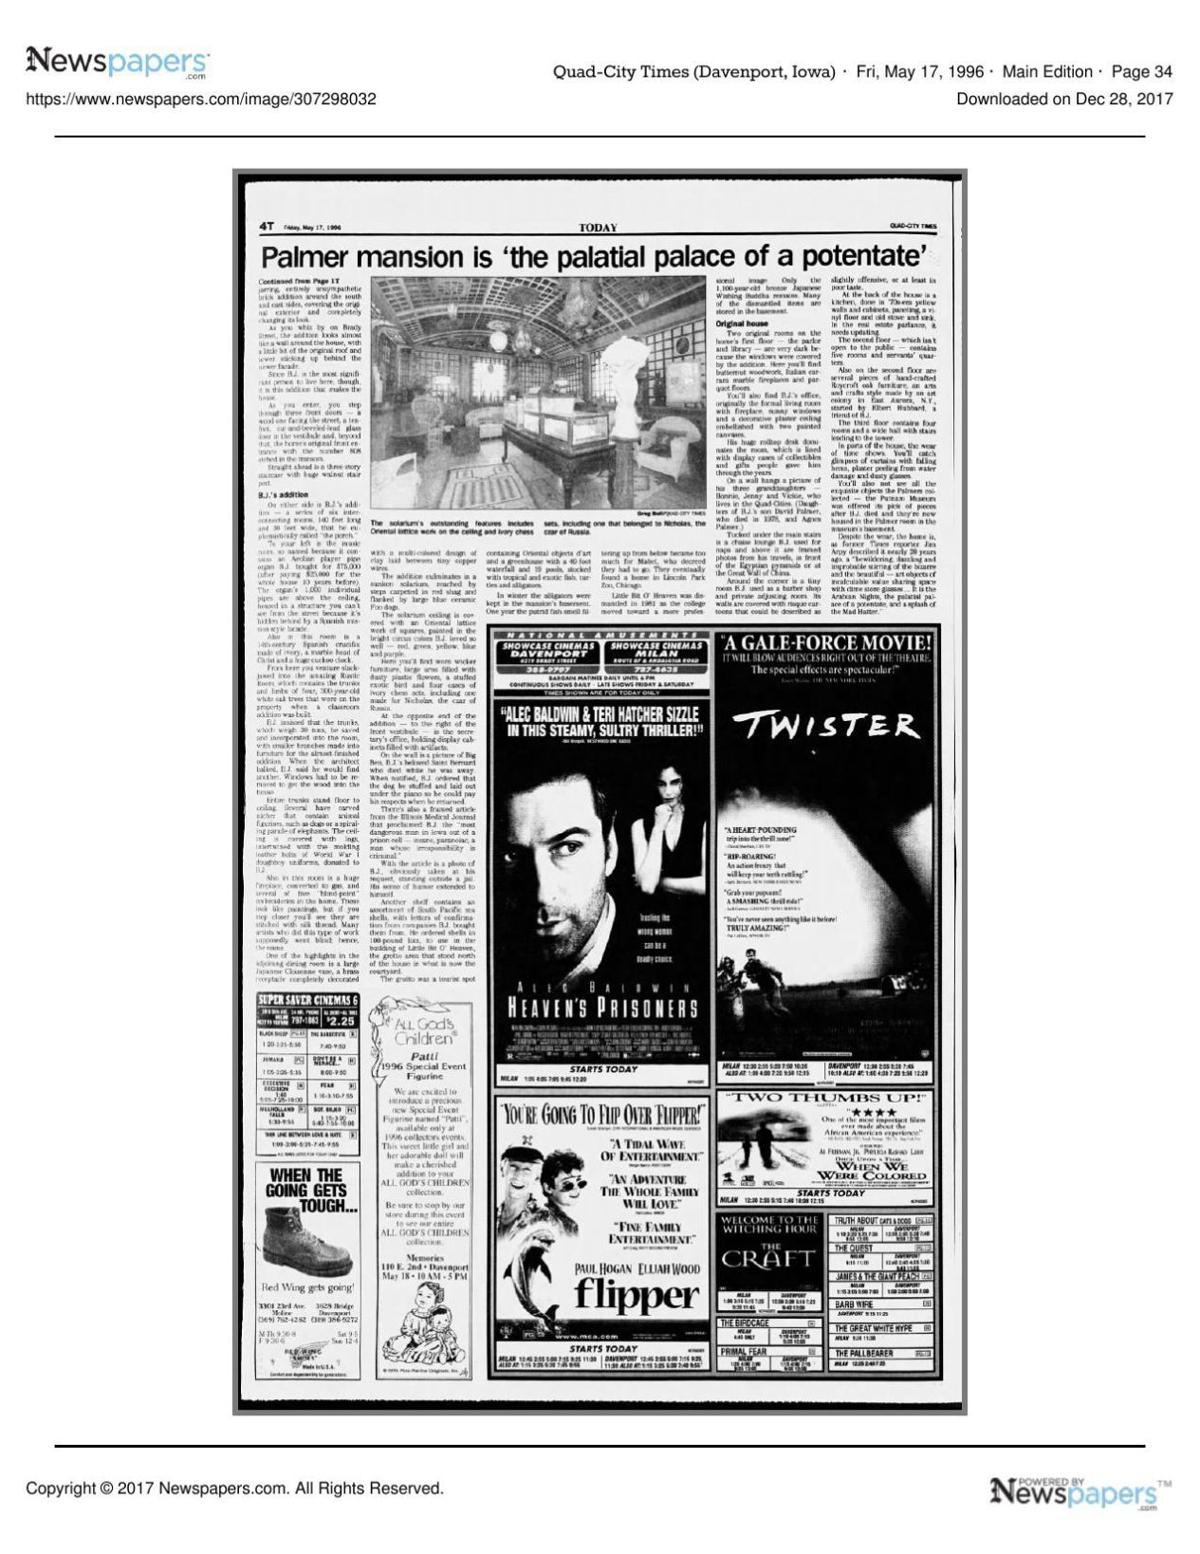 May 17, 1996 page 4T